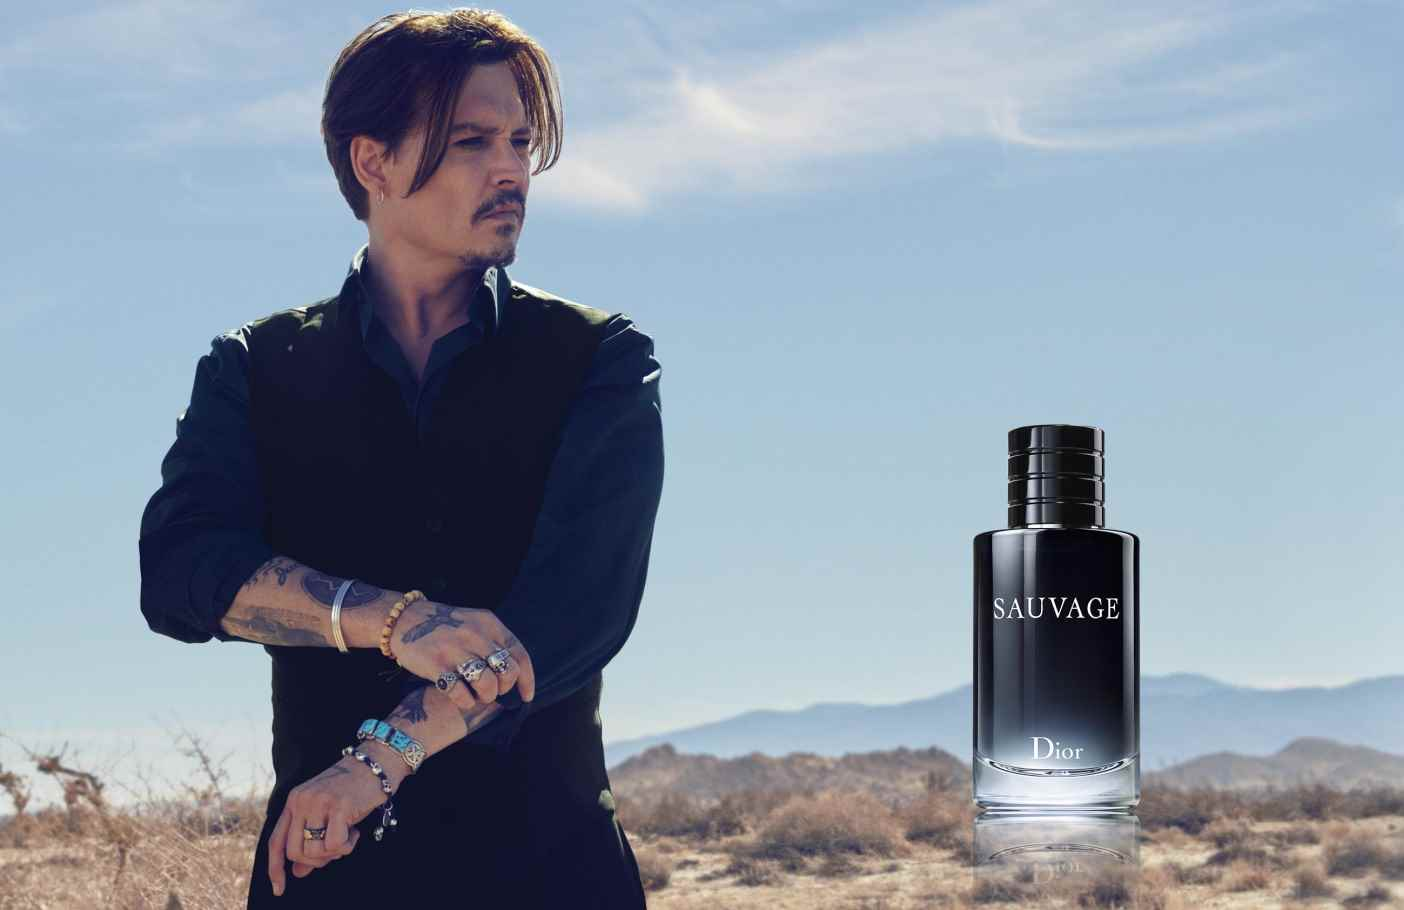 Музыка из рекламы Dior - Dior Sauvage (Johnny Depp)